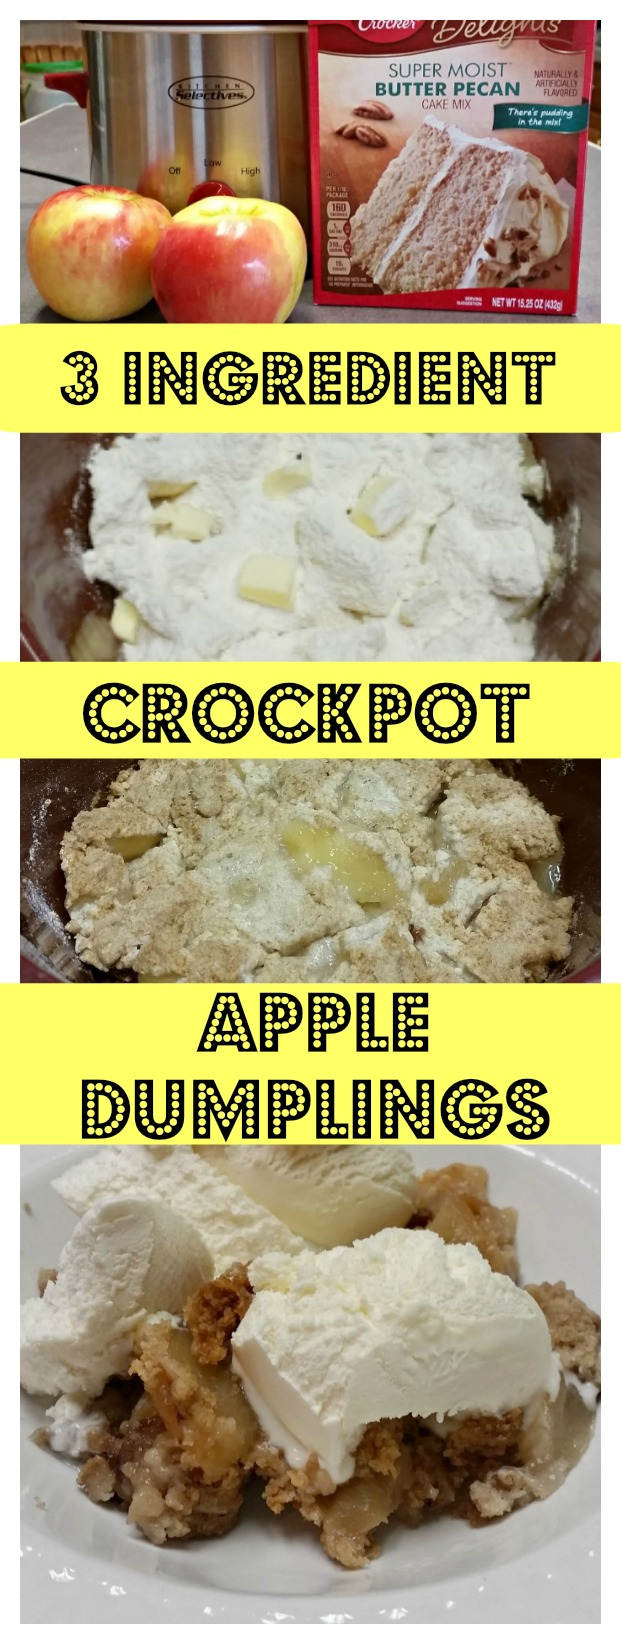 Crockpot Apple Dumplings recipe. Easy recipe made from scratch using fresh apples. Delicious Fall dessert. #apples